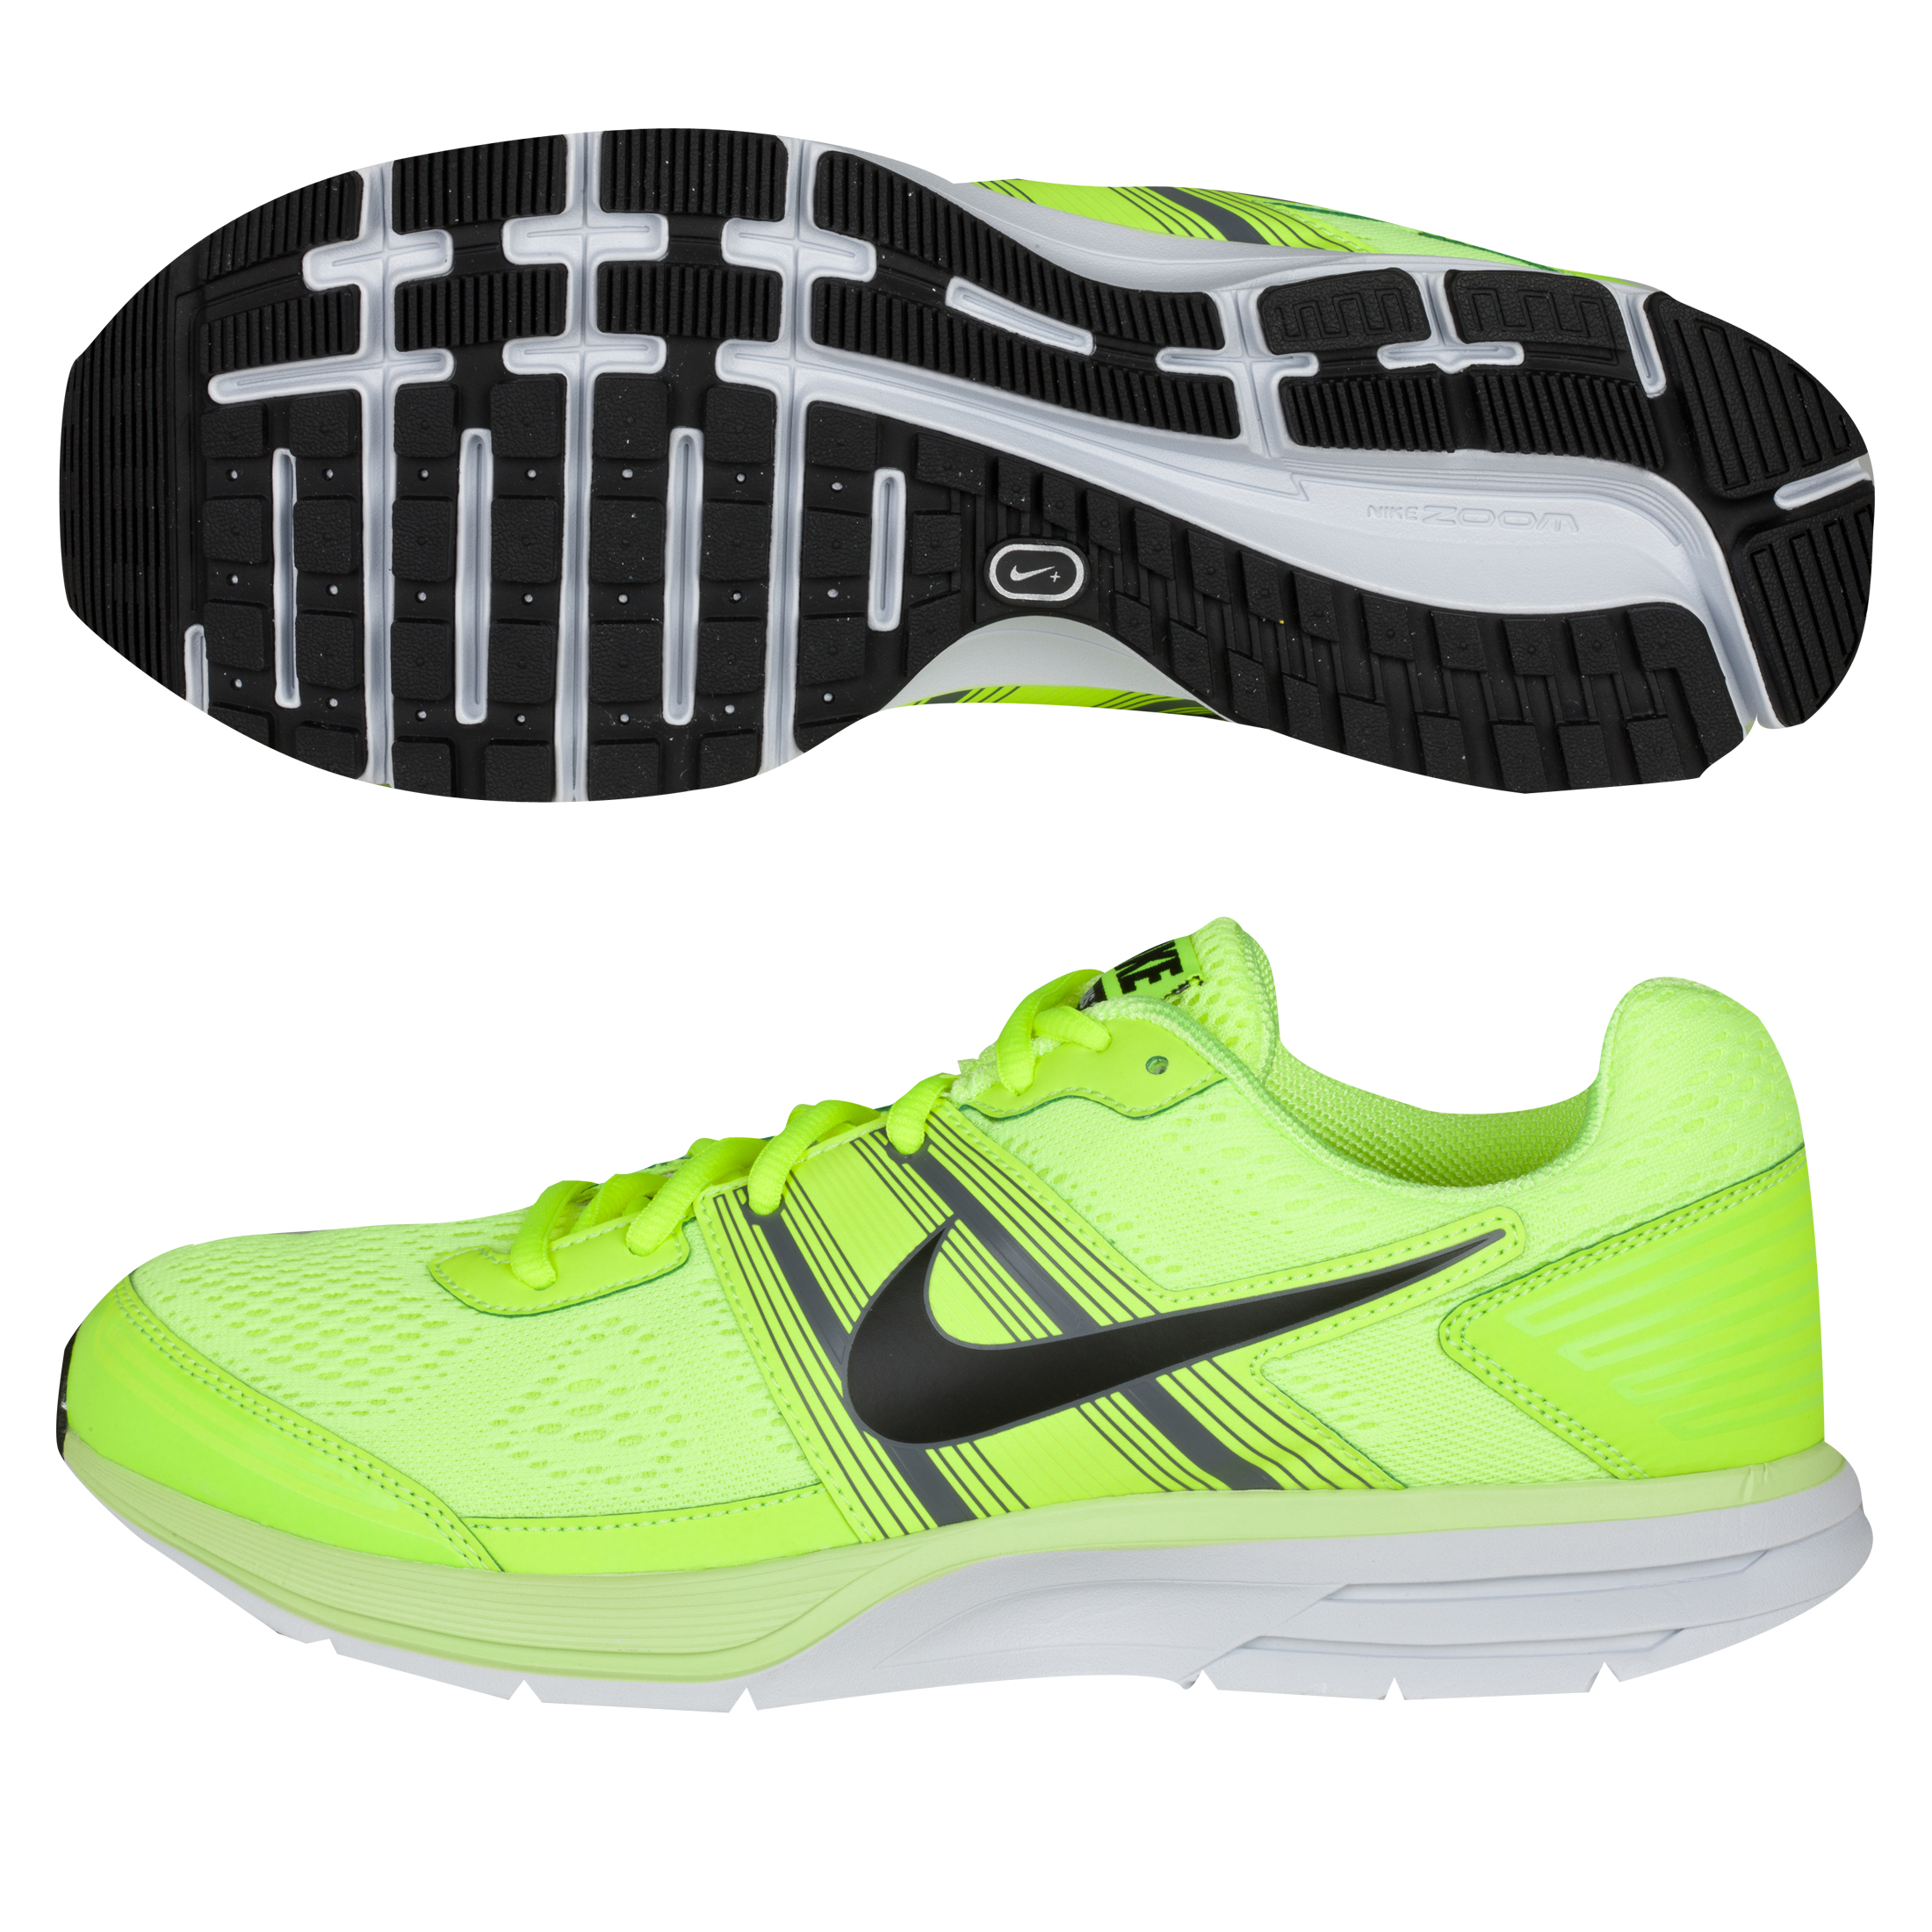 Nike Air Pegasus(+) 29 Trainers - Volt/Black/Dark Grey/Platinum